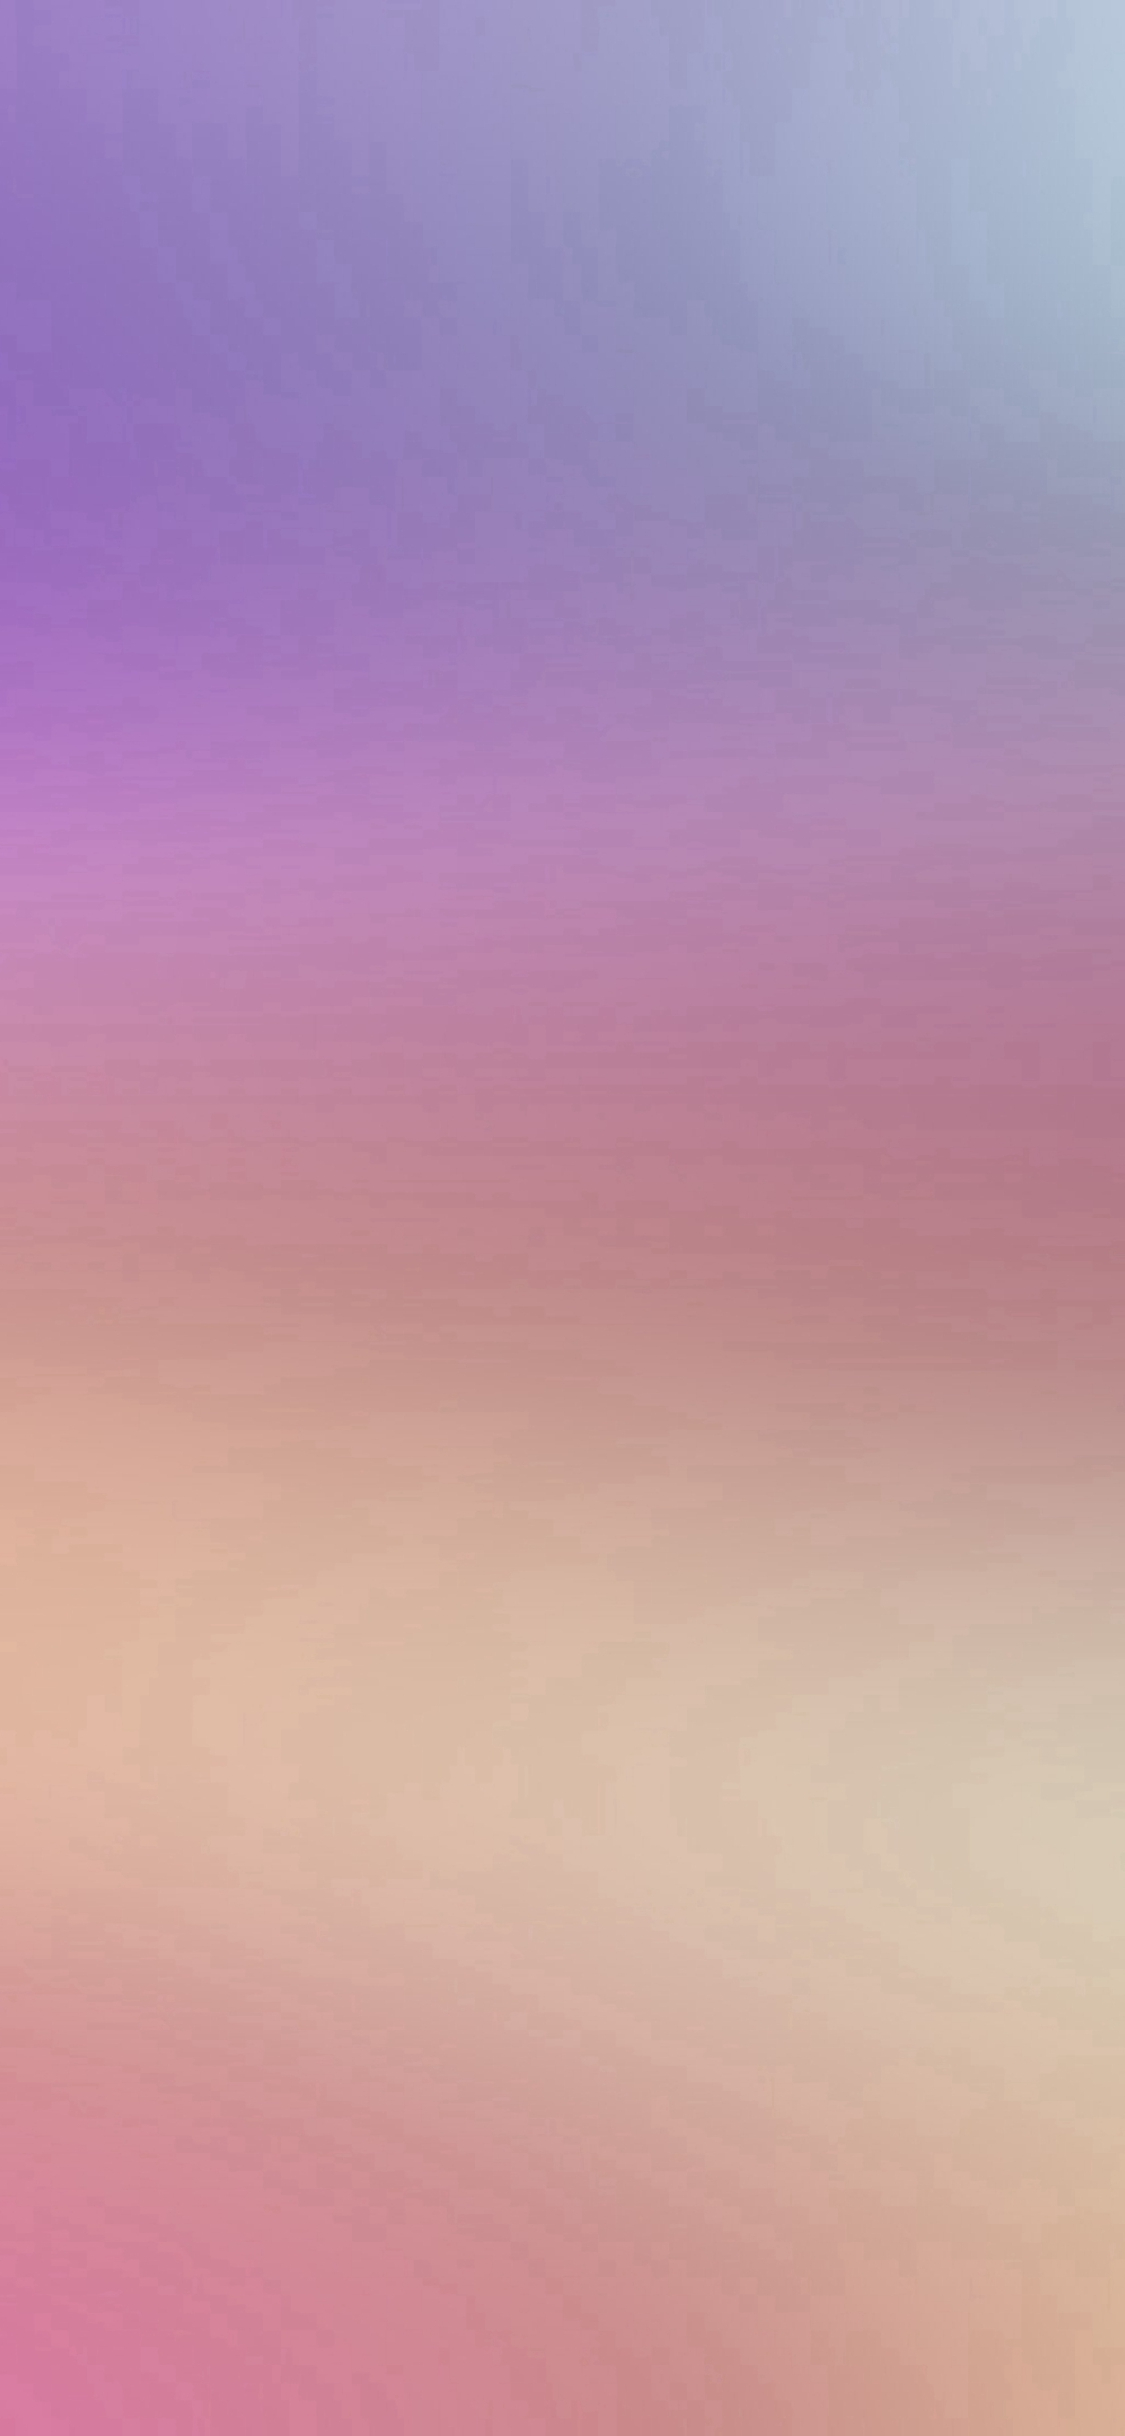 Abstract Purple Pink Blur Gradation iPhone X wallpaper